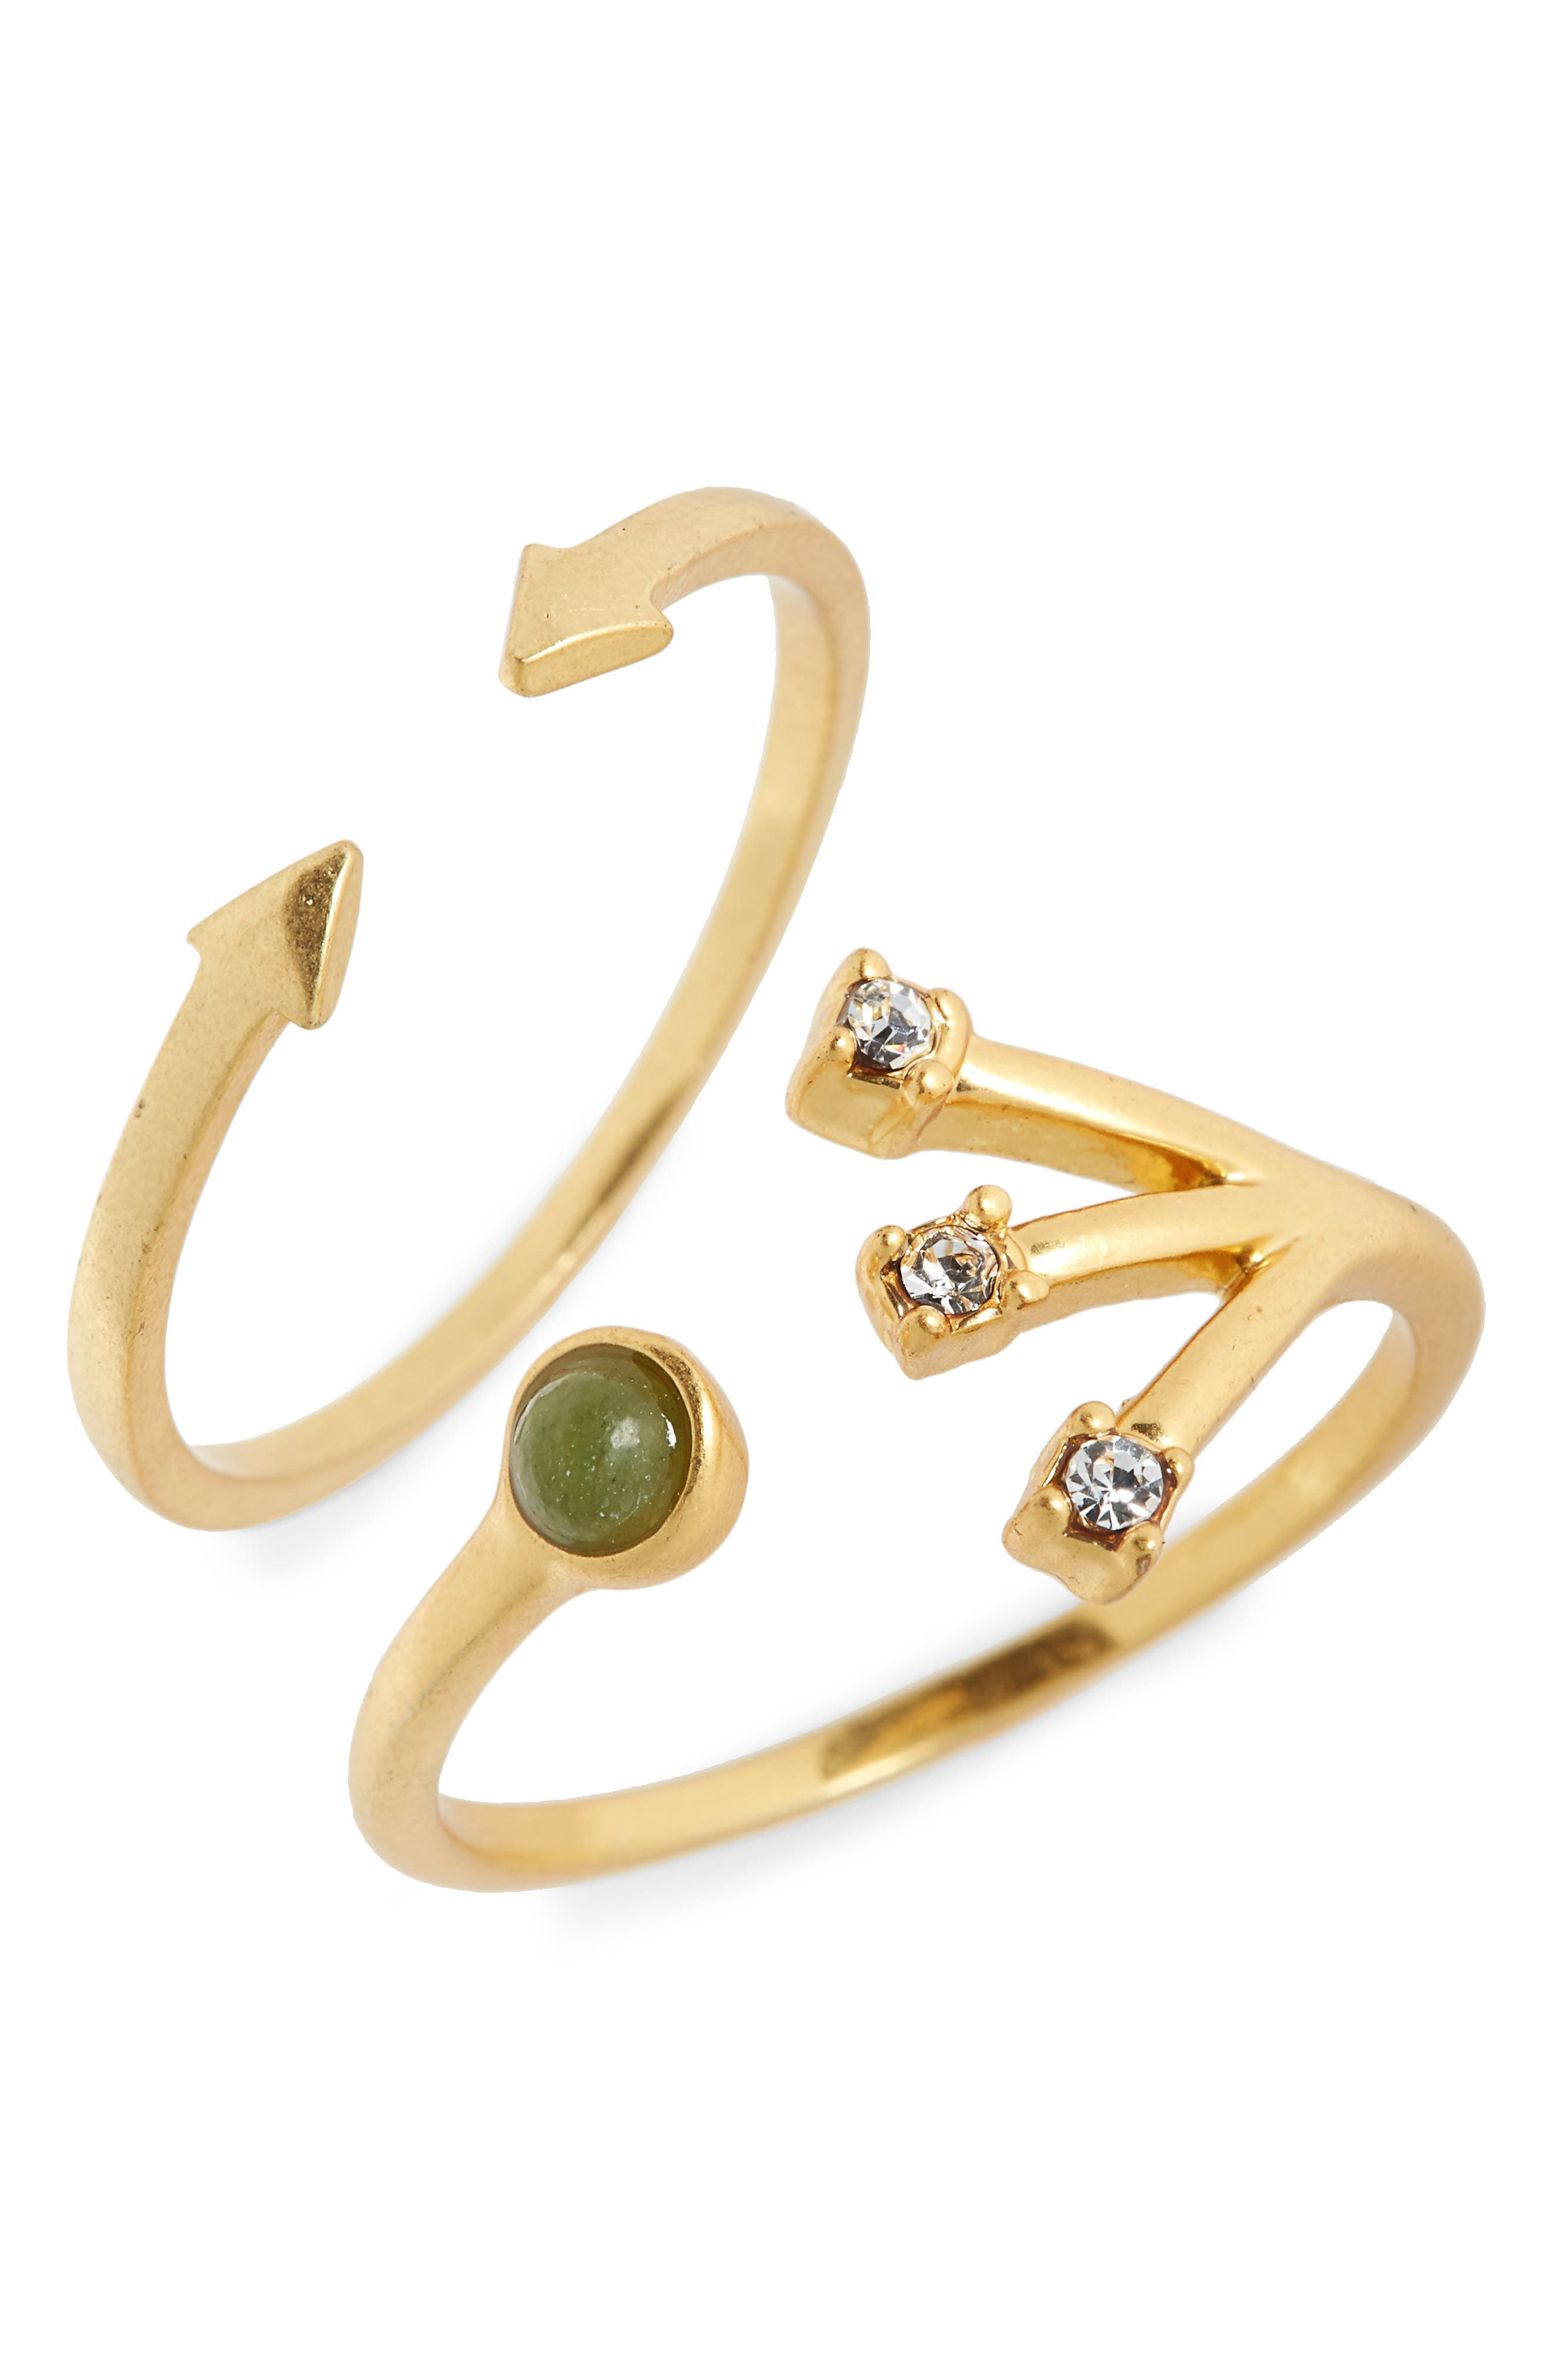 Main Image - Madewell Tiny Jewels Set of 2 Stacking Rings